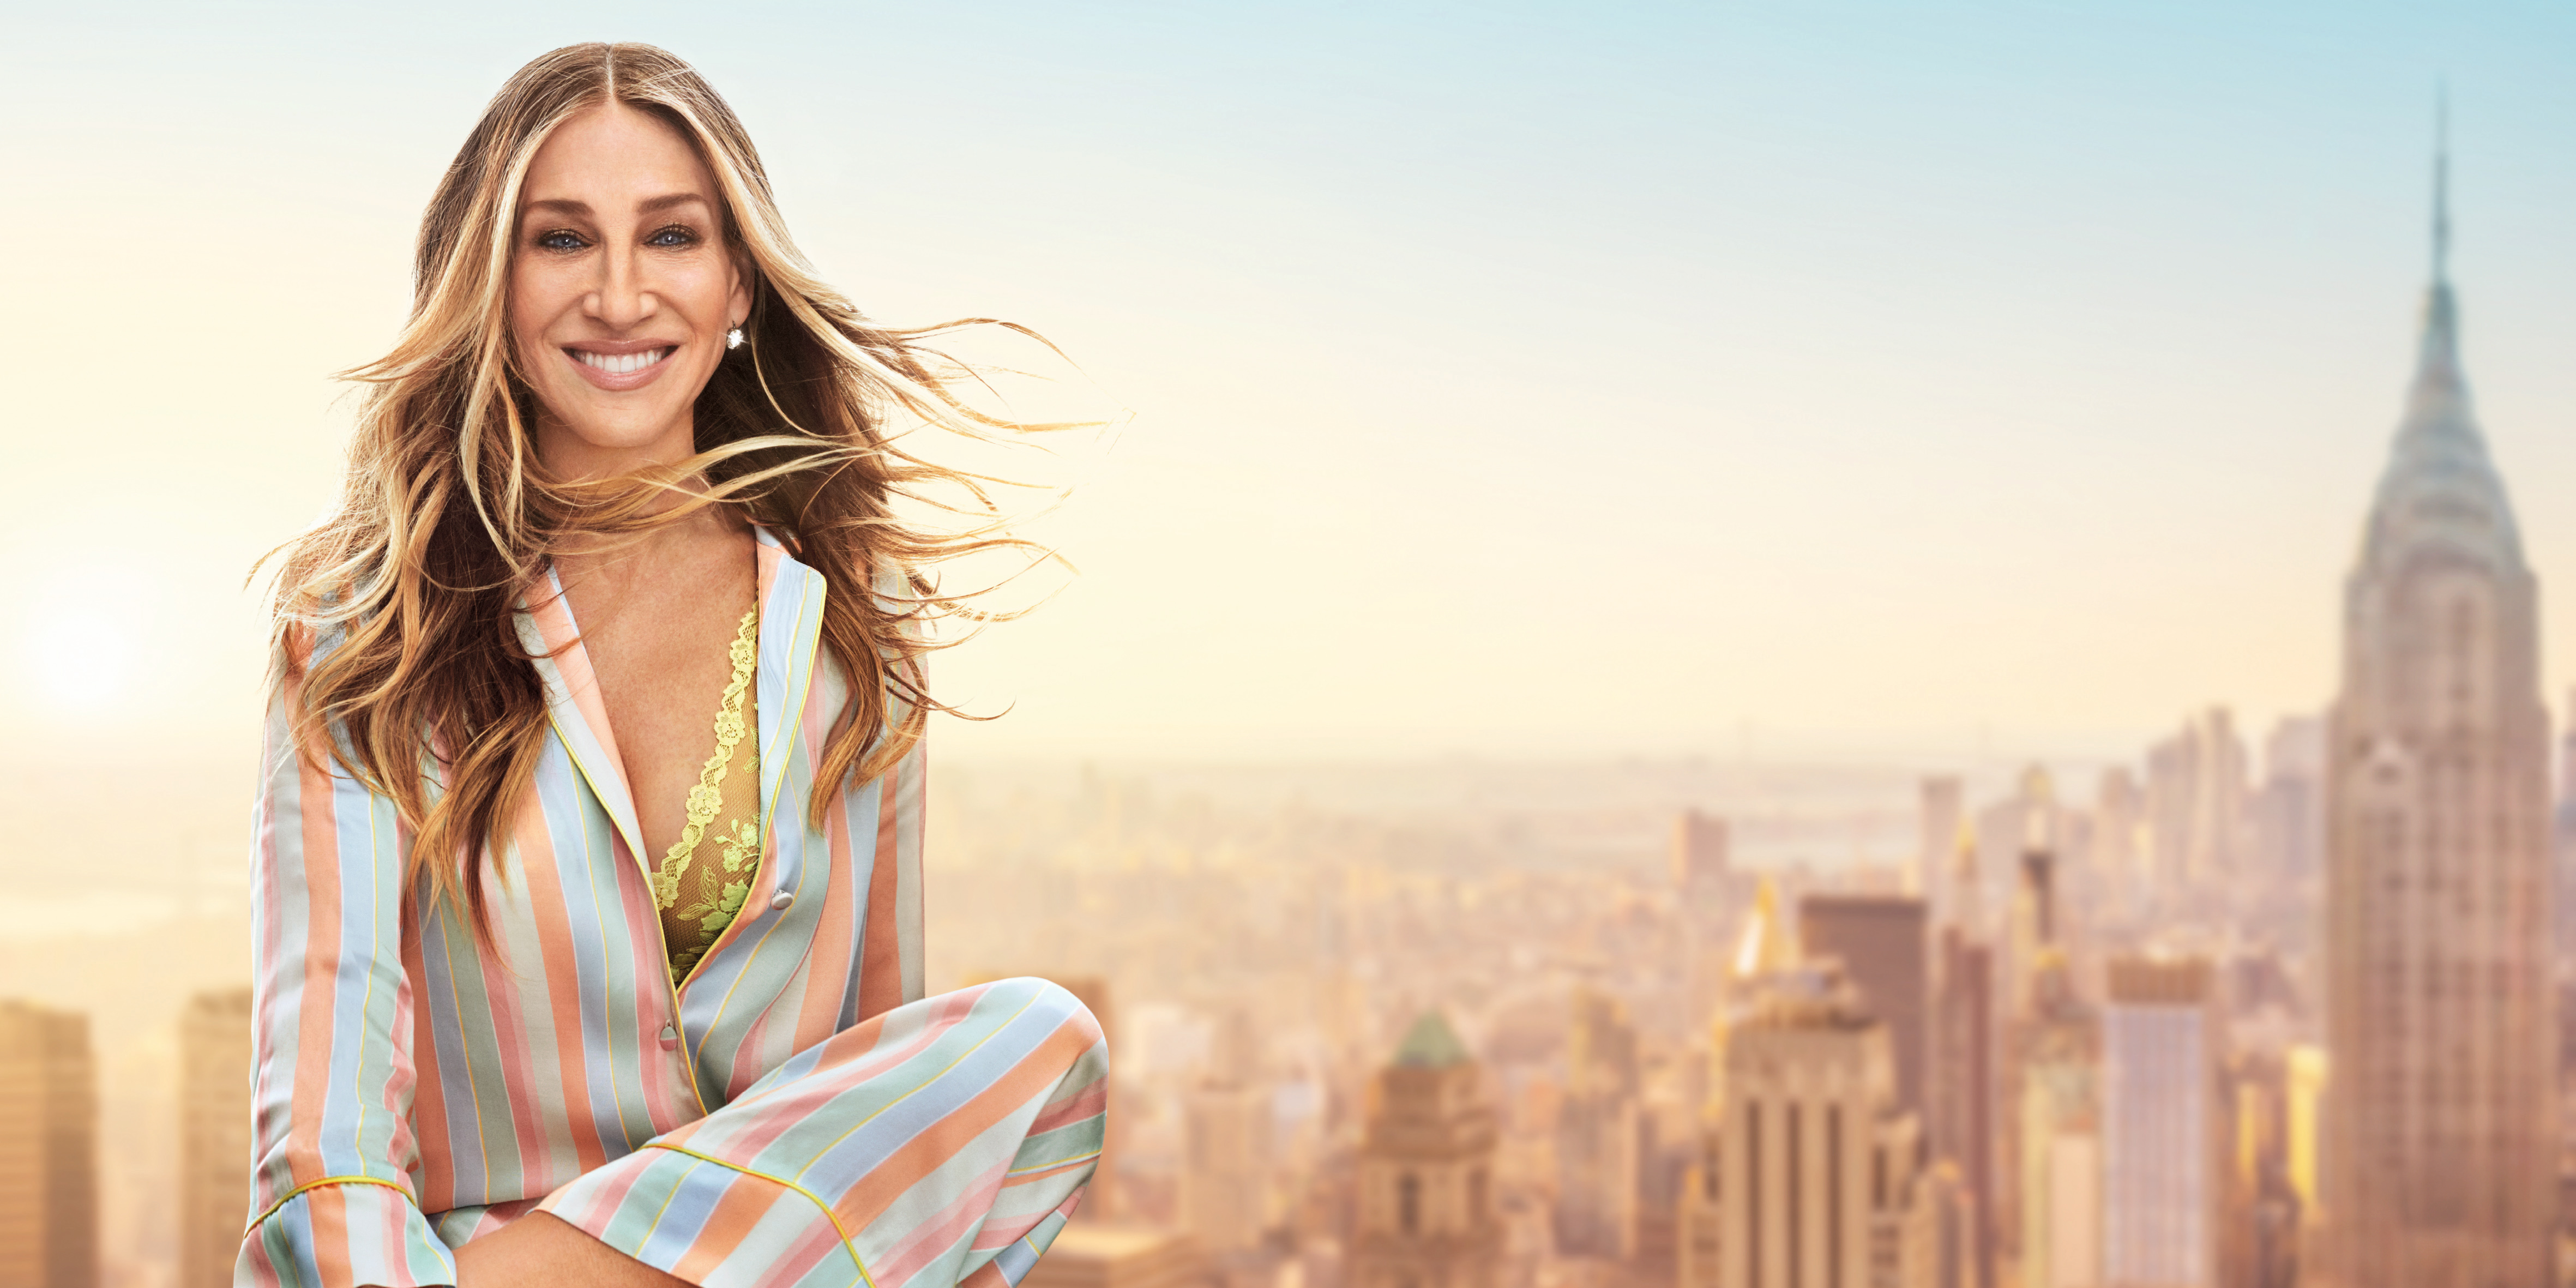 Sarah Jessica Parker fronting the Intimissimi's 2019 ad campaign.